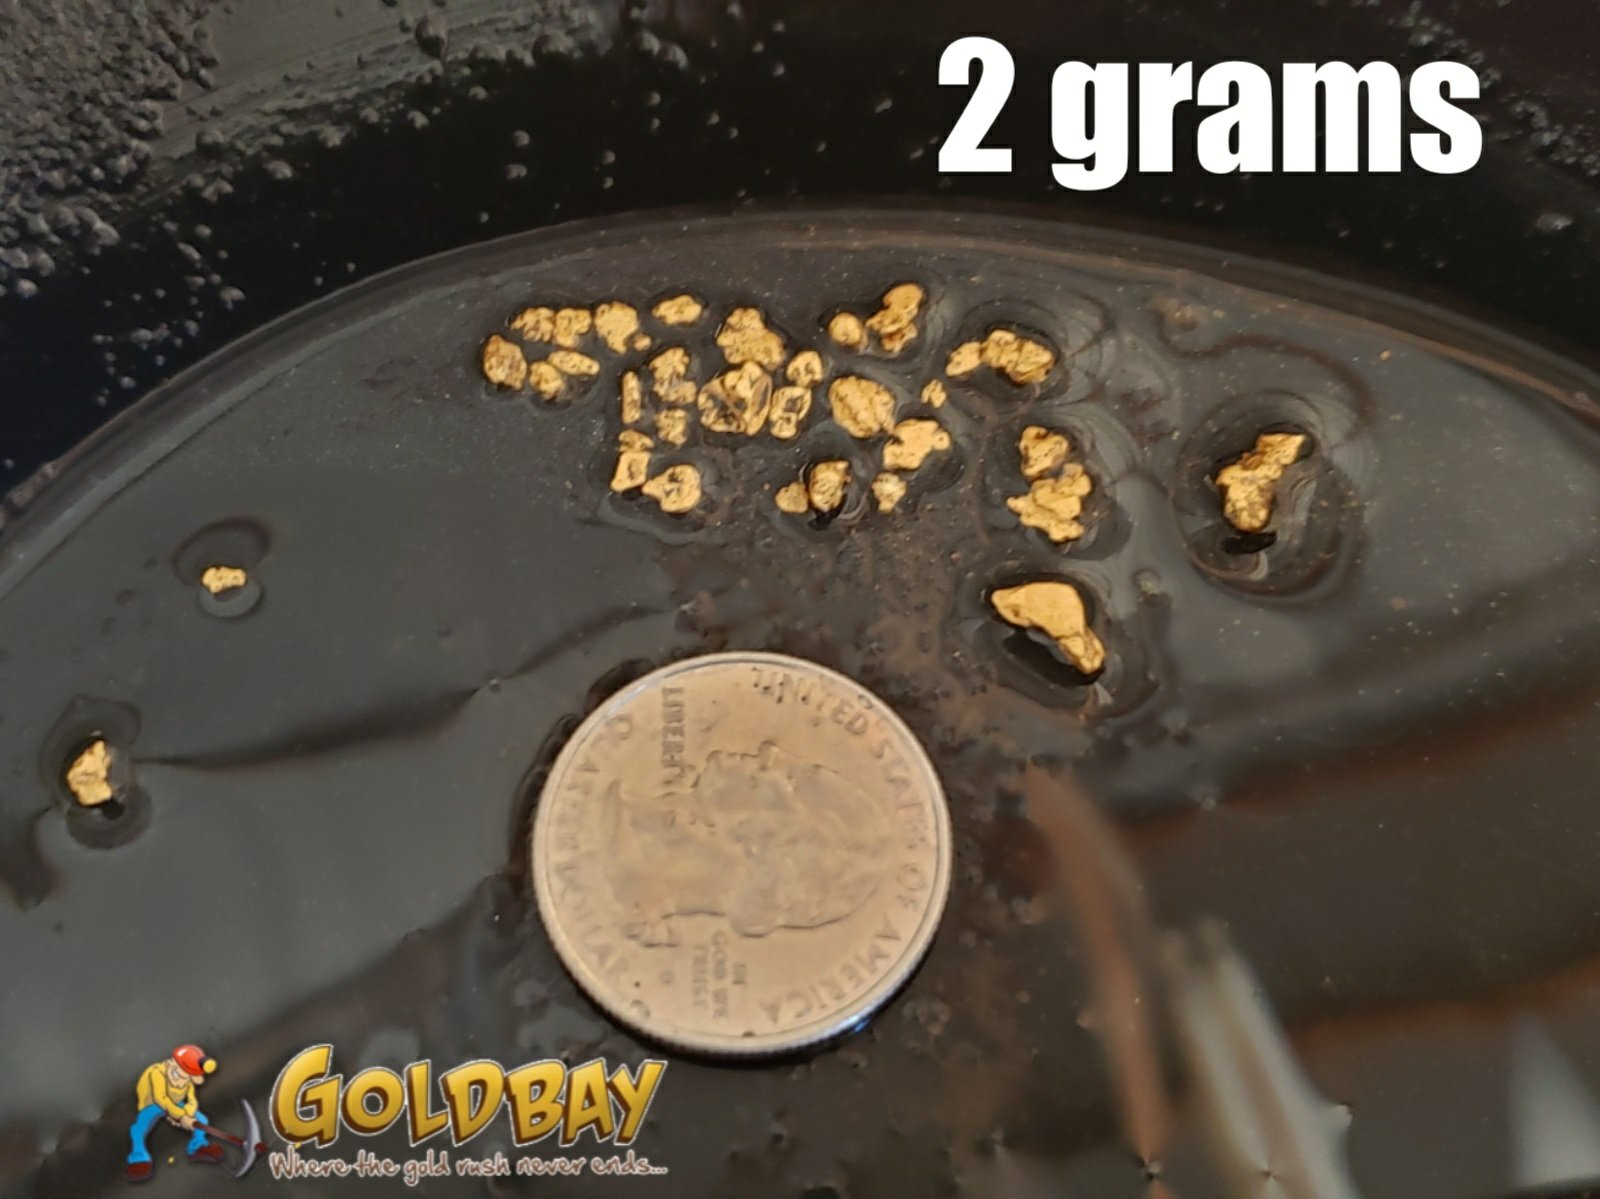 3# Pay Dirt - 1 gram Build a Bag paydirt - $49.95 per gram